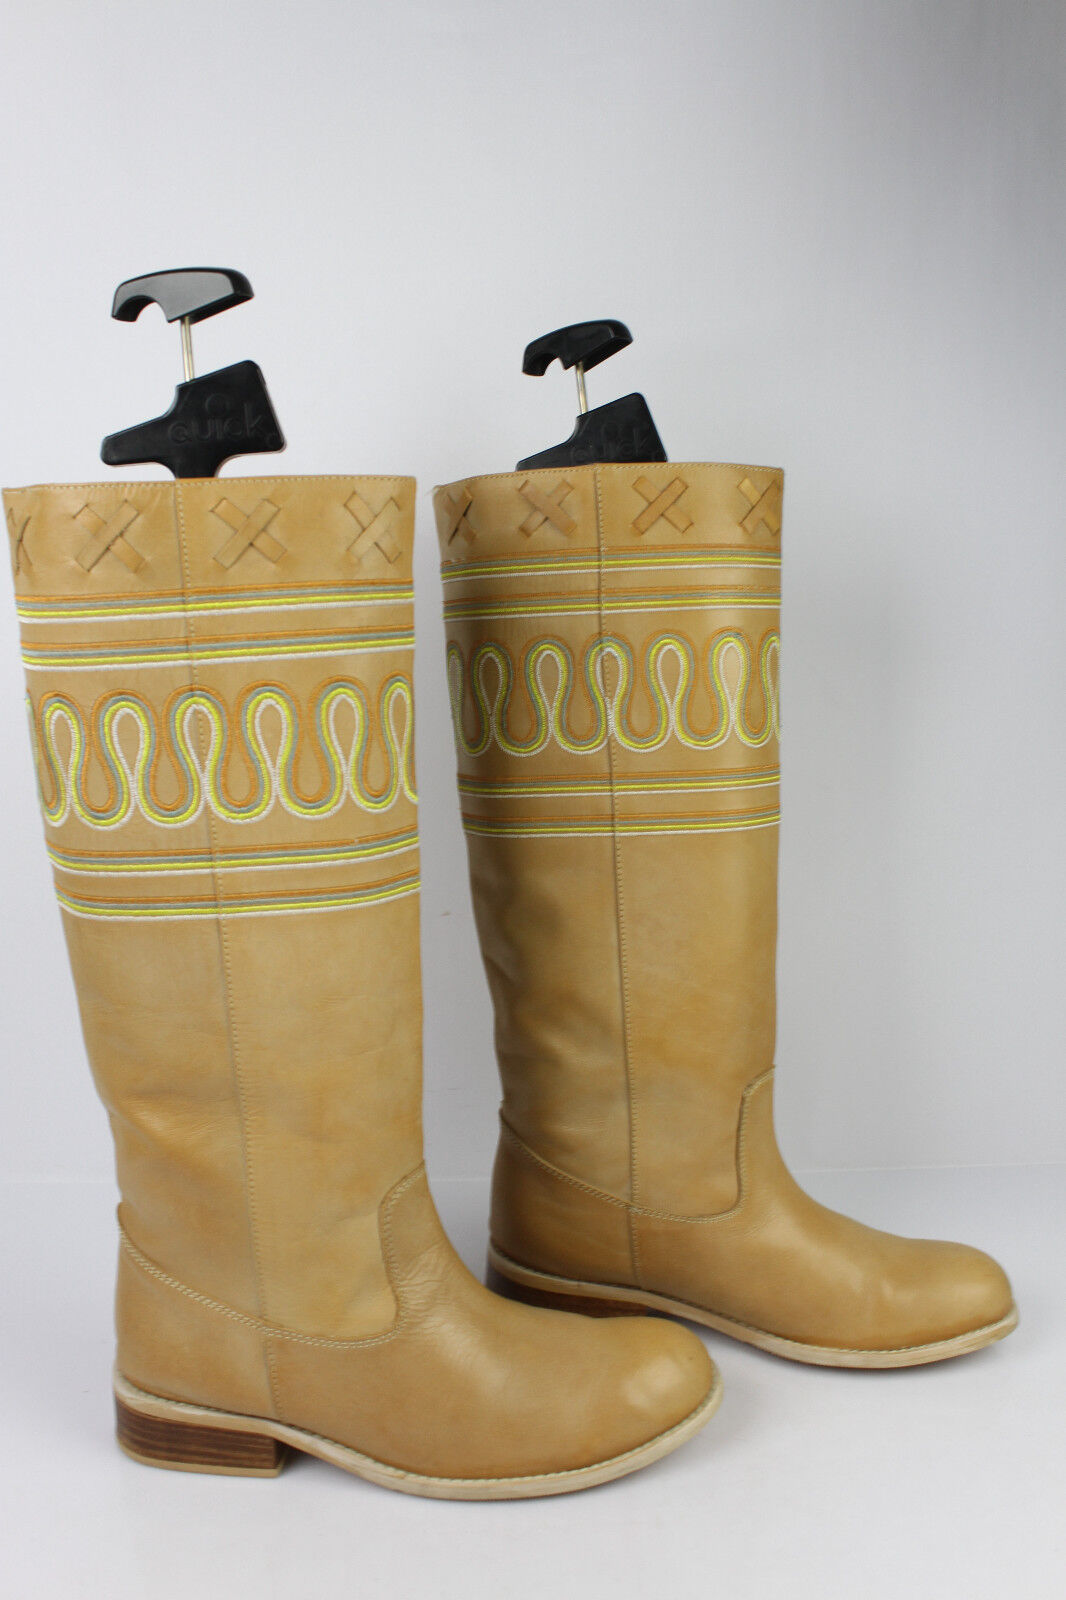 Bottes FRIIS & COMPANY Cuir Biscuit T 38 TBE